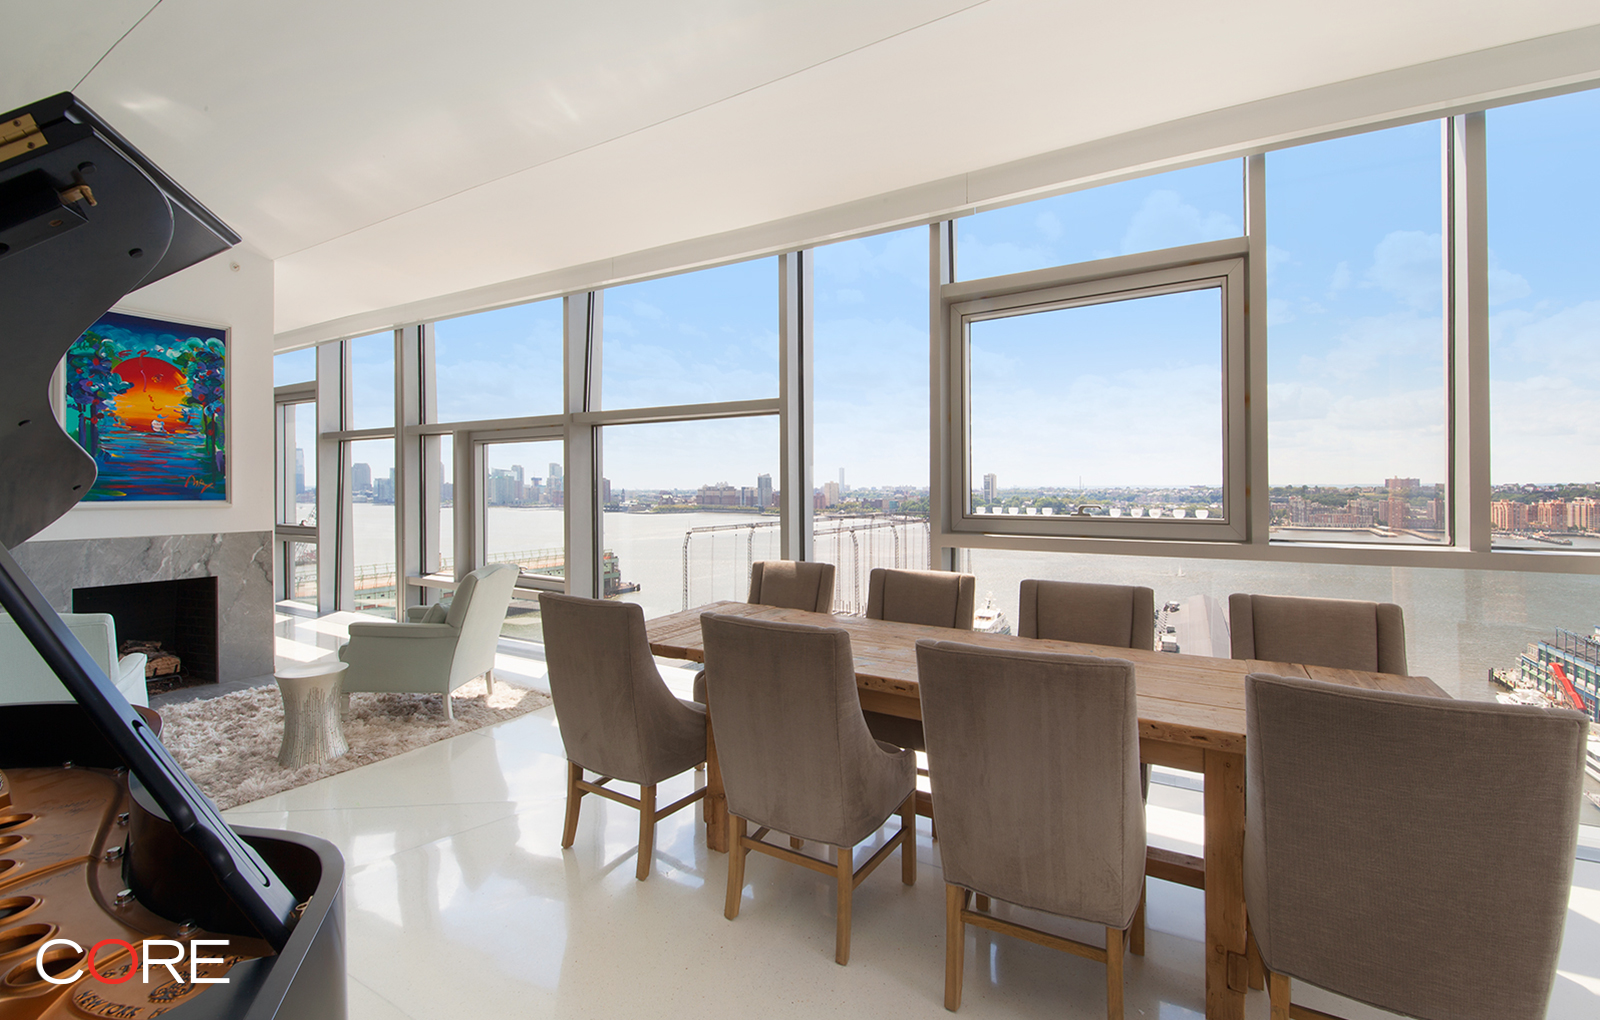 kelsey grammer sold his condo at jean nouvel's west chelsea